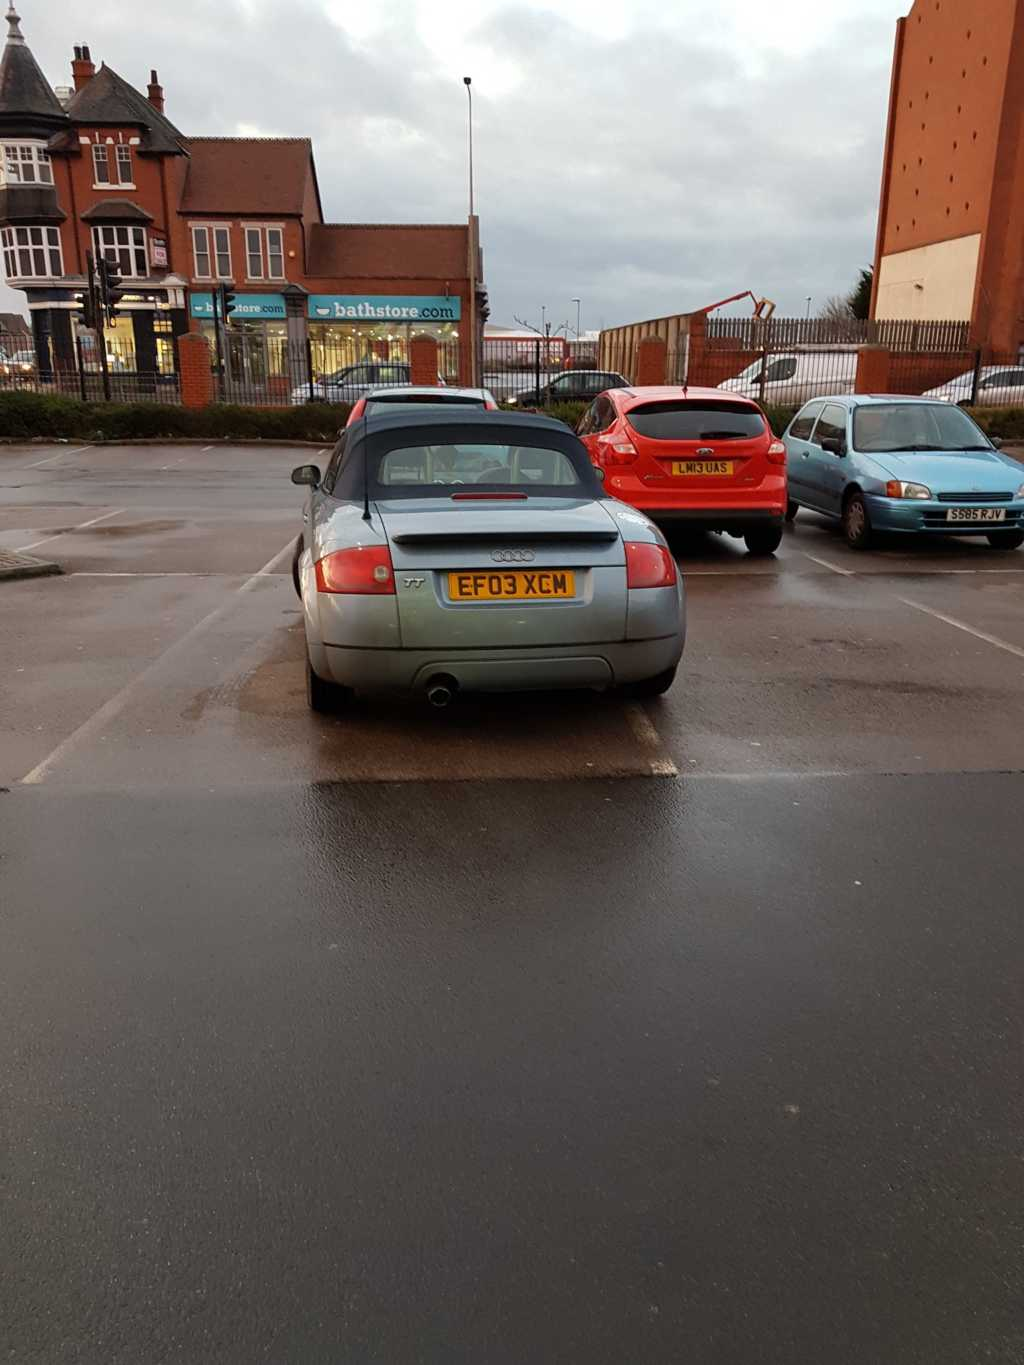 EF03 XCM is an Inconsiderate Parker